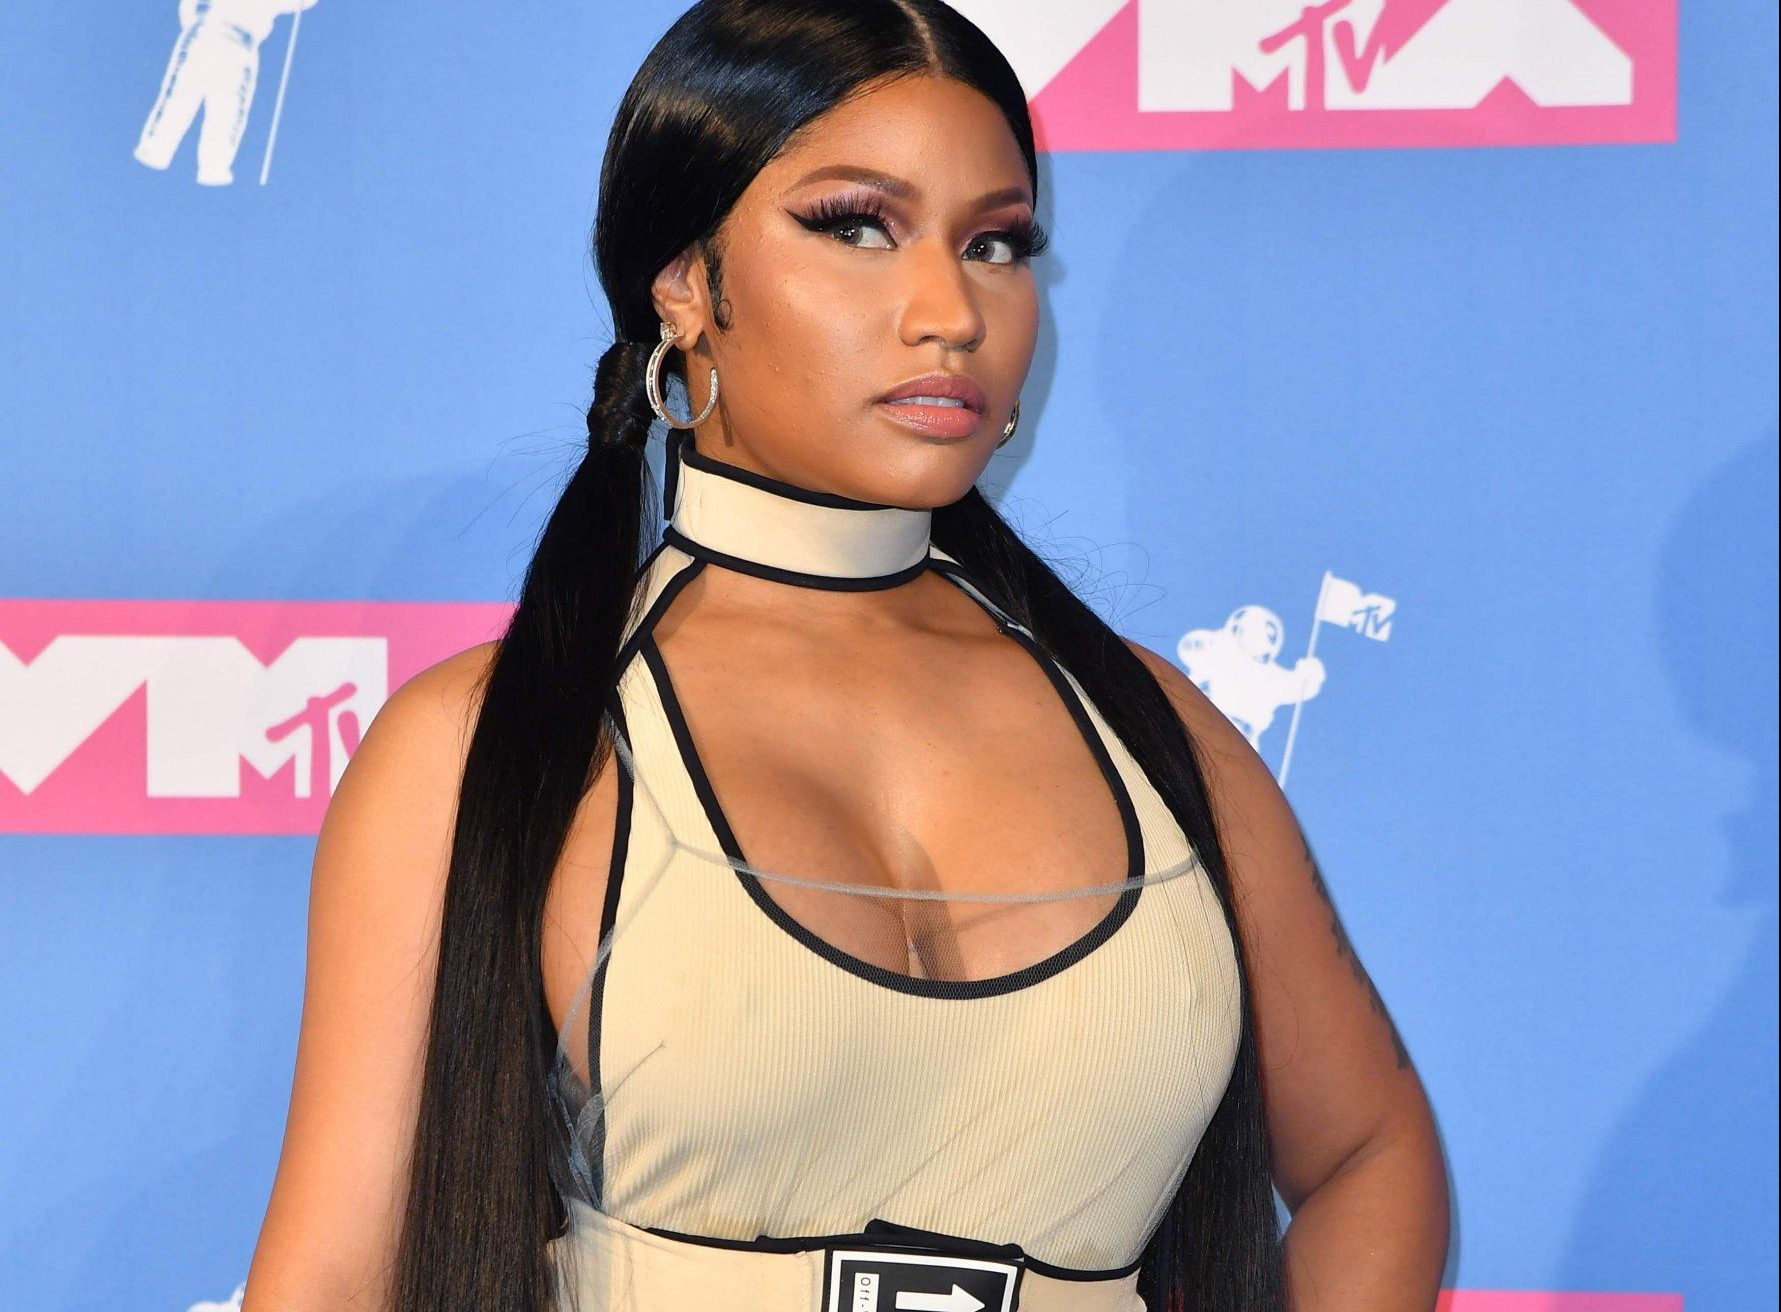 Nicki Minaj contributing to relief efforts after her native Trinidad is devastated by floods